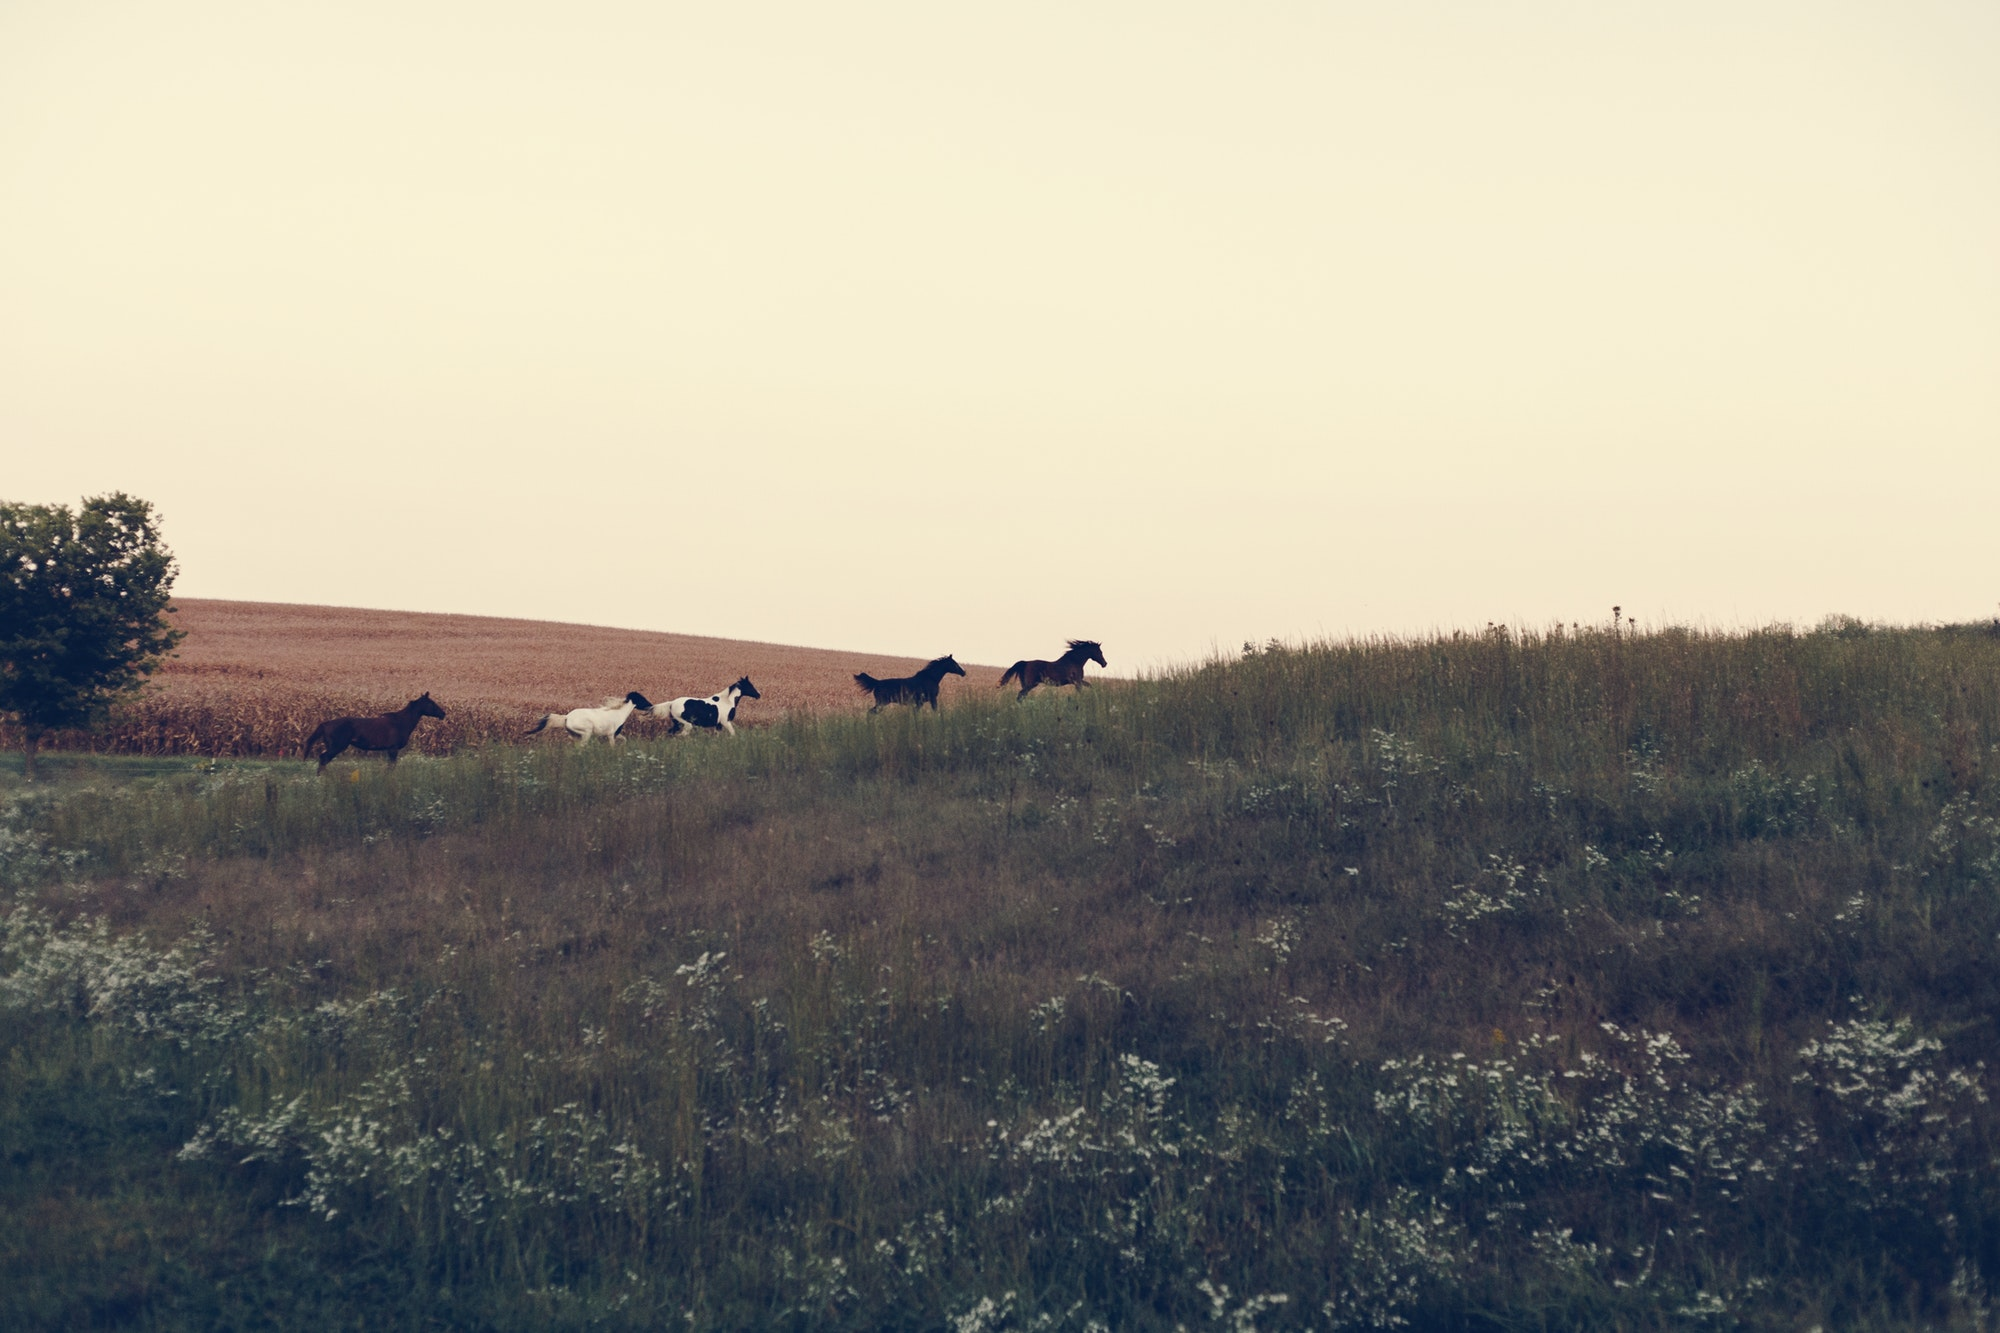 Horses running on a hill